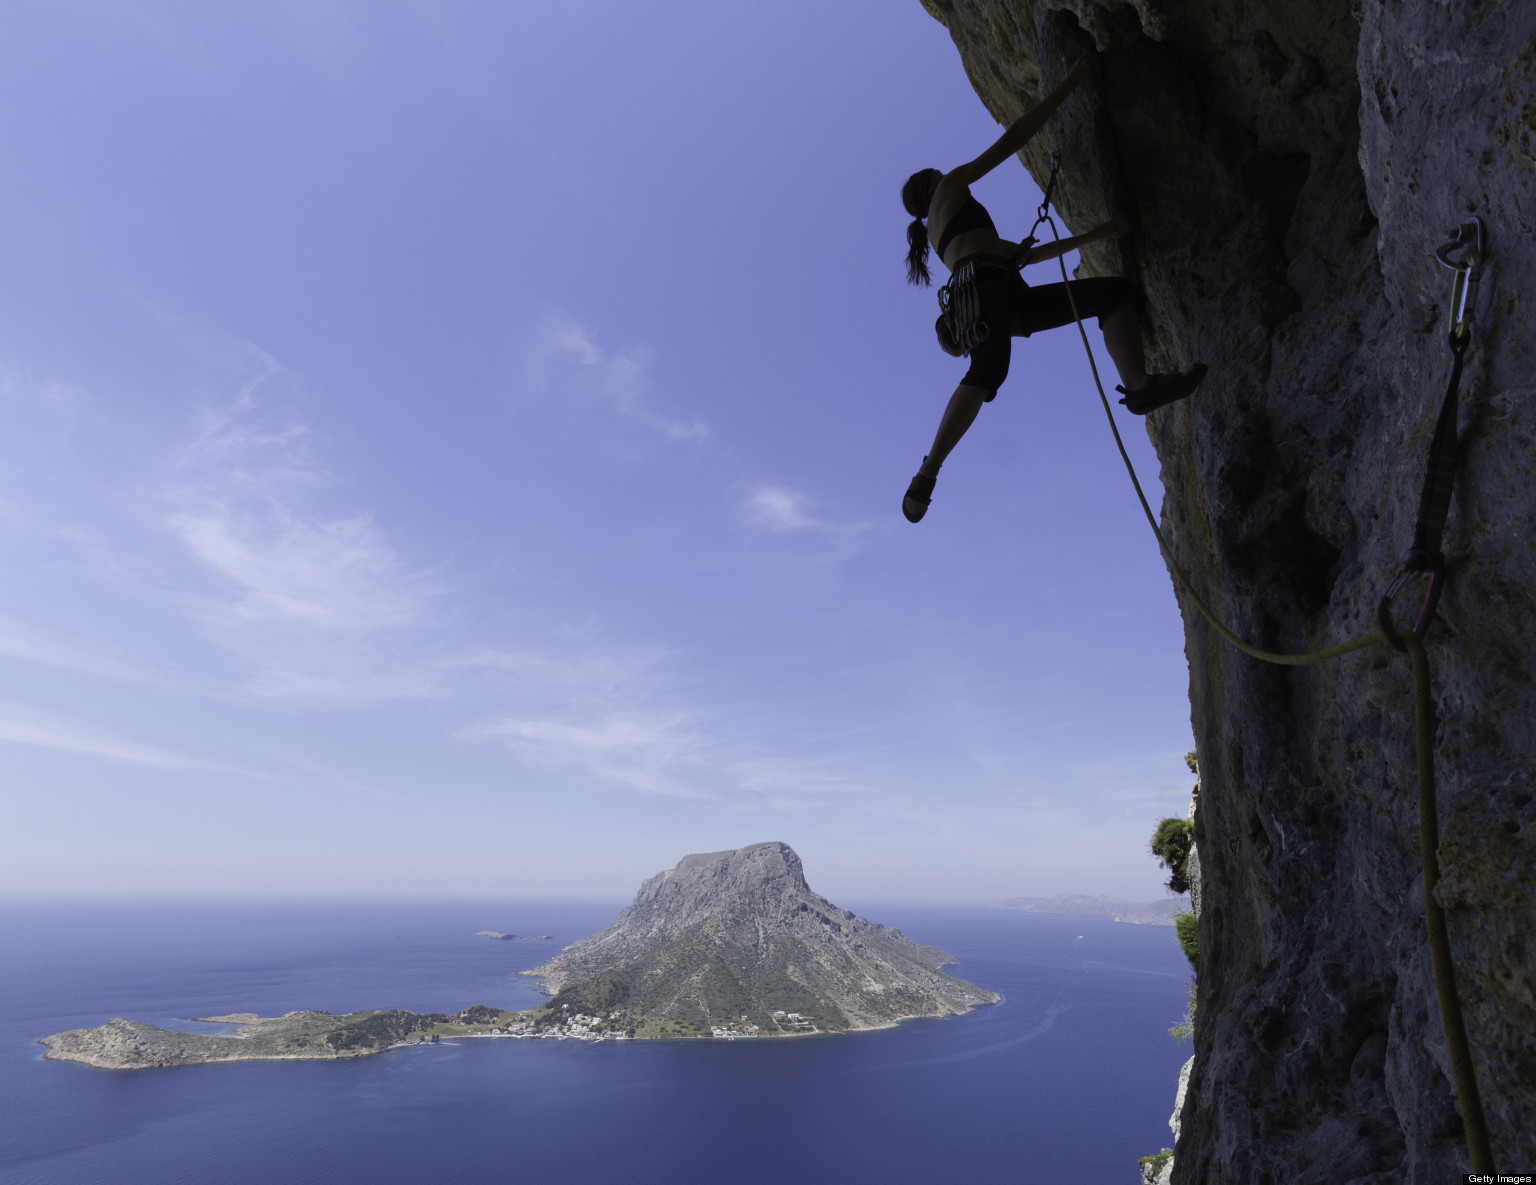 Inspirational Pictures And Quotes: Climbing, Sex And The Olympics